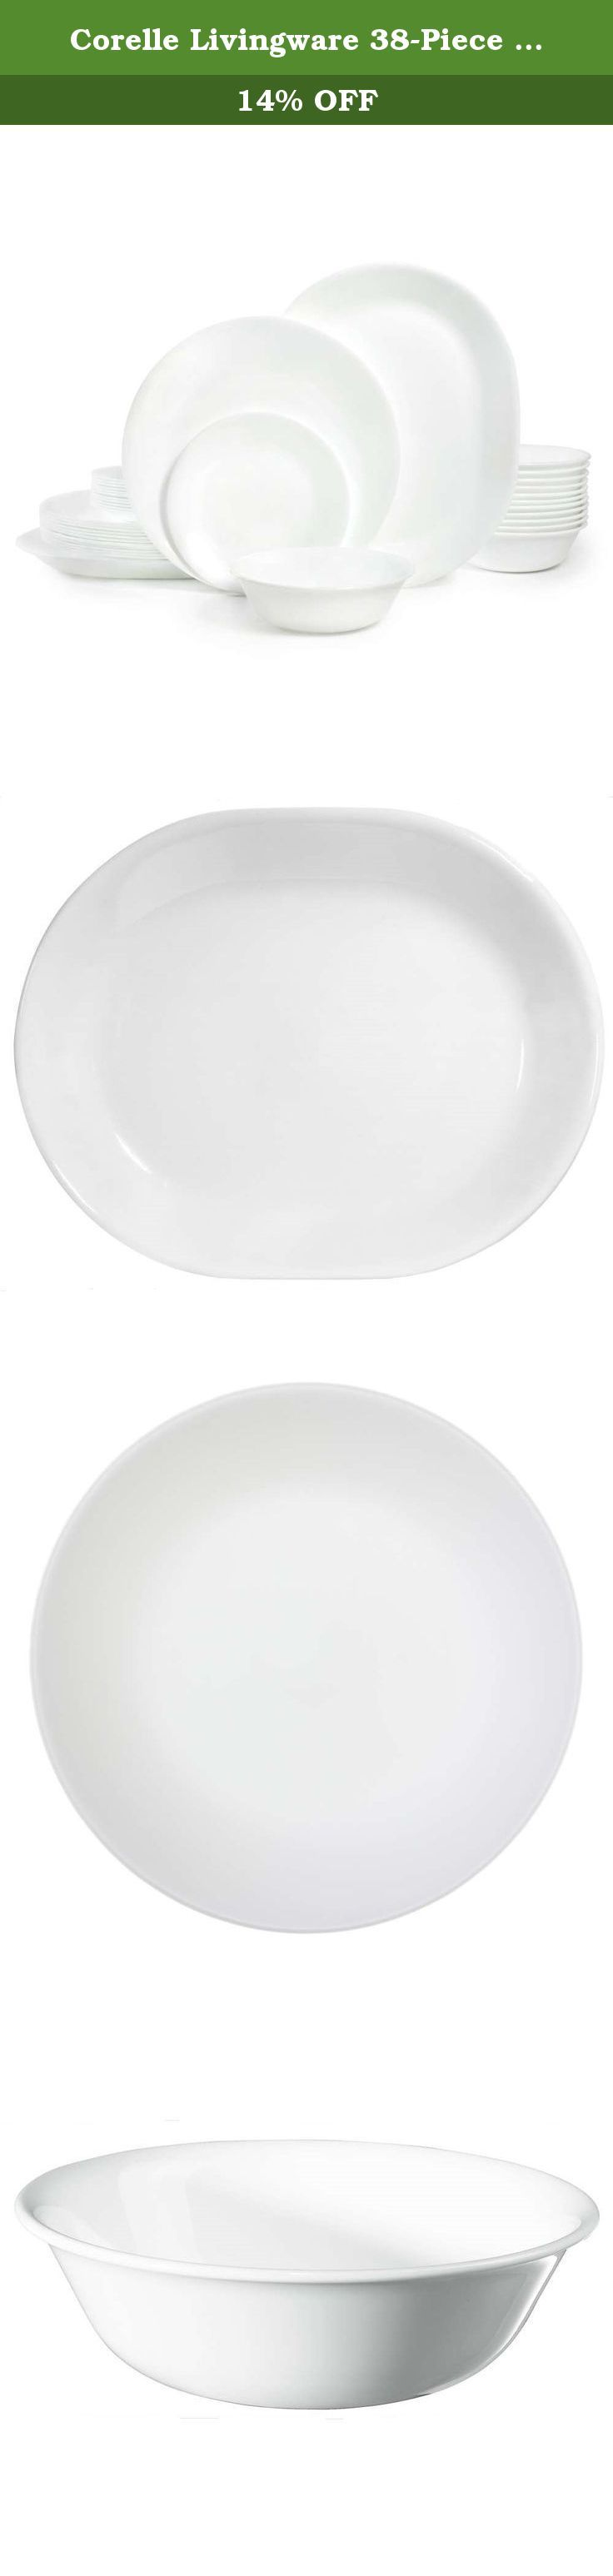 Corelle Livingware 38-Piece Dinnerware Set, Winter Frost White, Service for 12. It's a white-out on your table and it's something to cheer about! With Corelle Winter Frost White dinnerware, you create a table setting that can change on a whim or with the seasons. simply by changing up your table accessories. You'll love the resiliency of Corelle dinnerware.